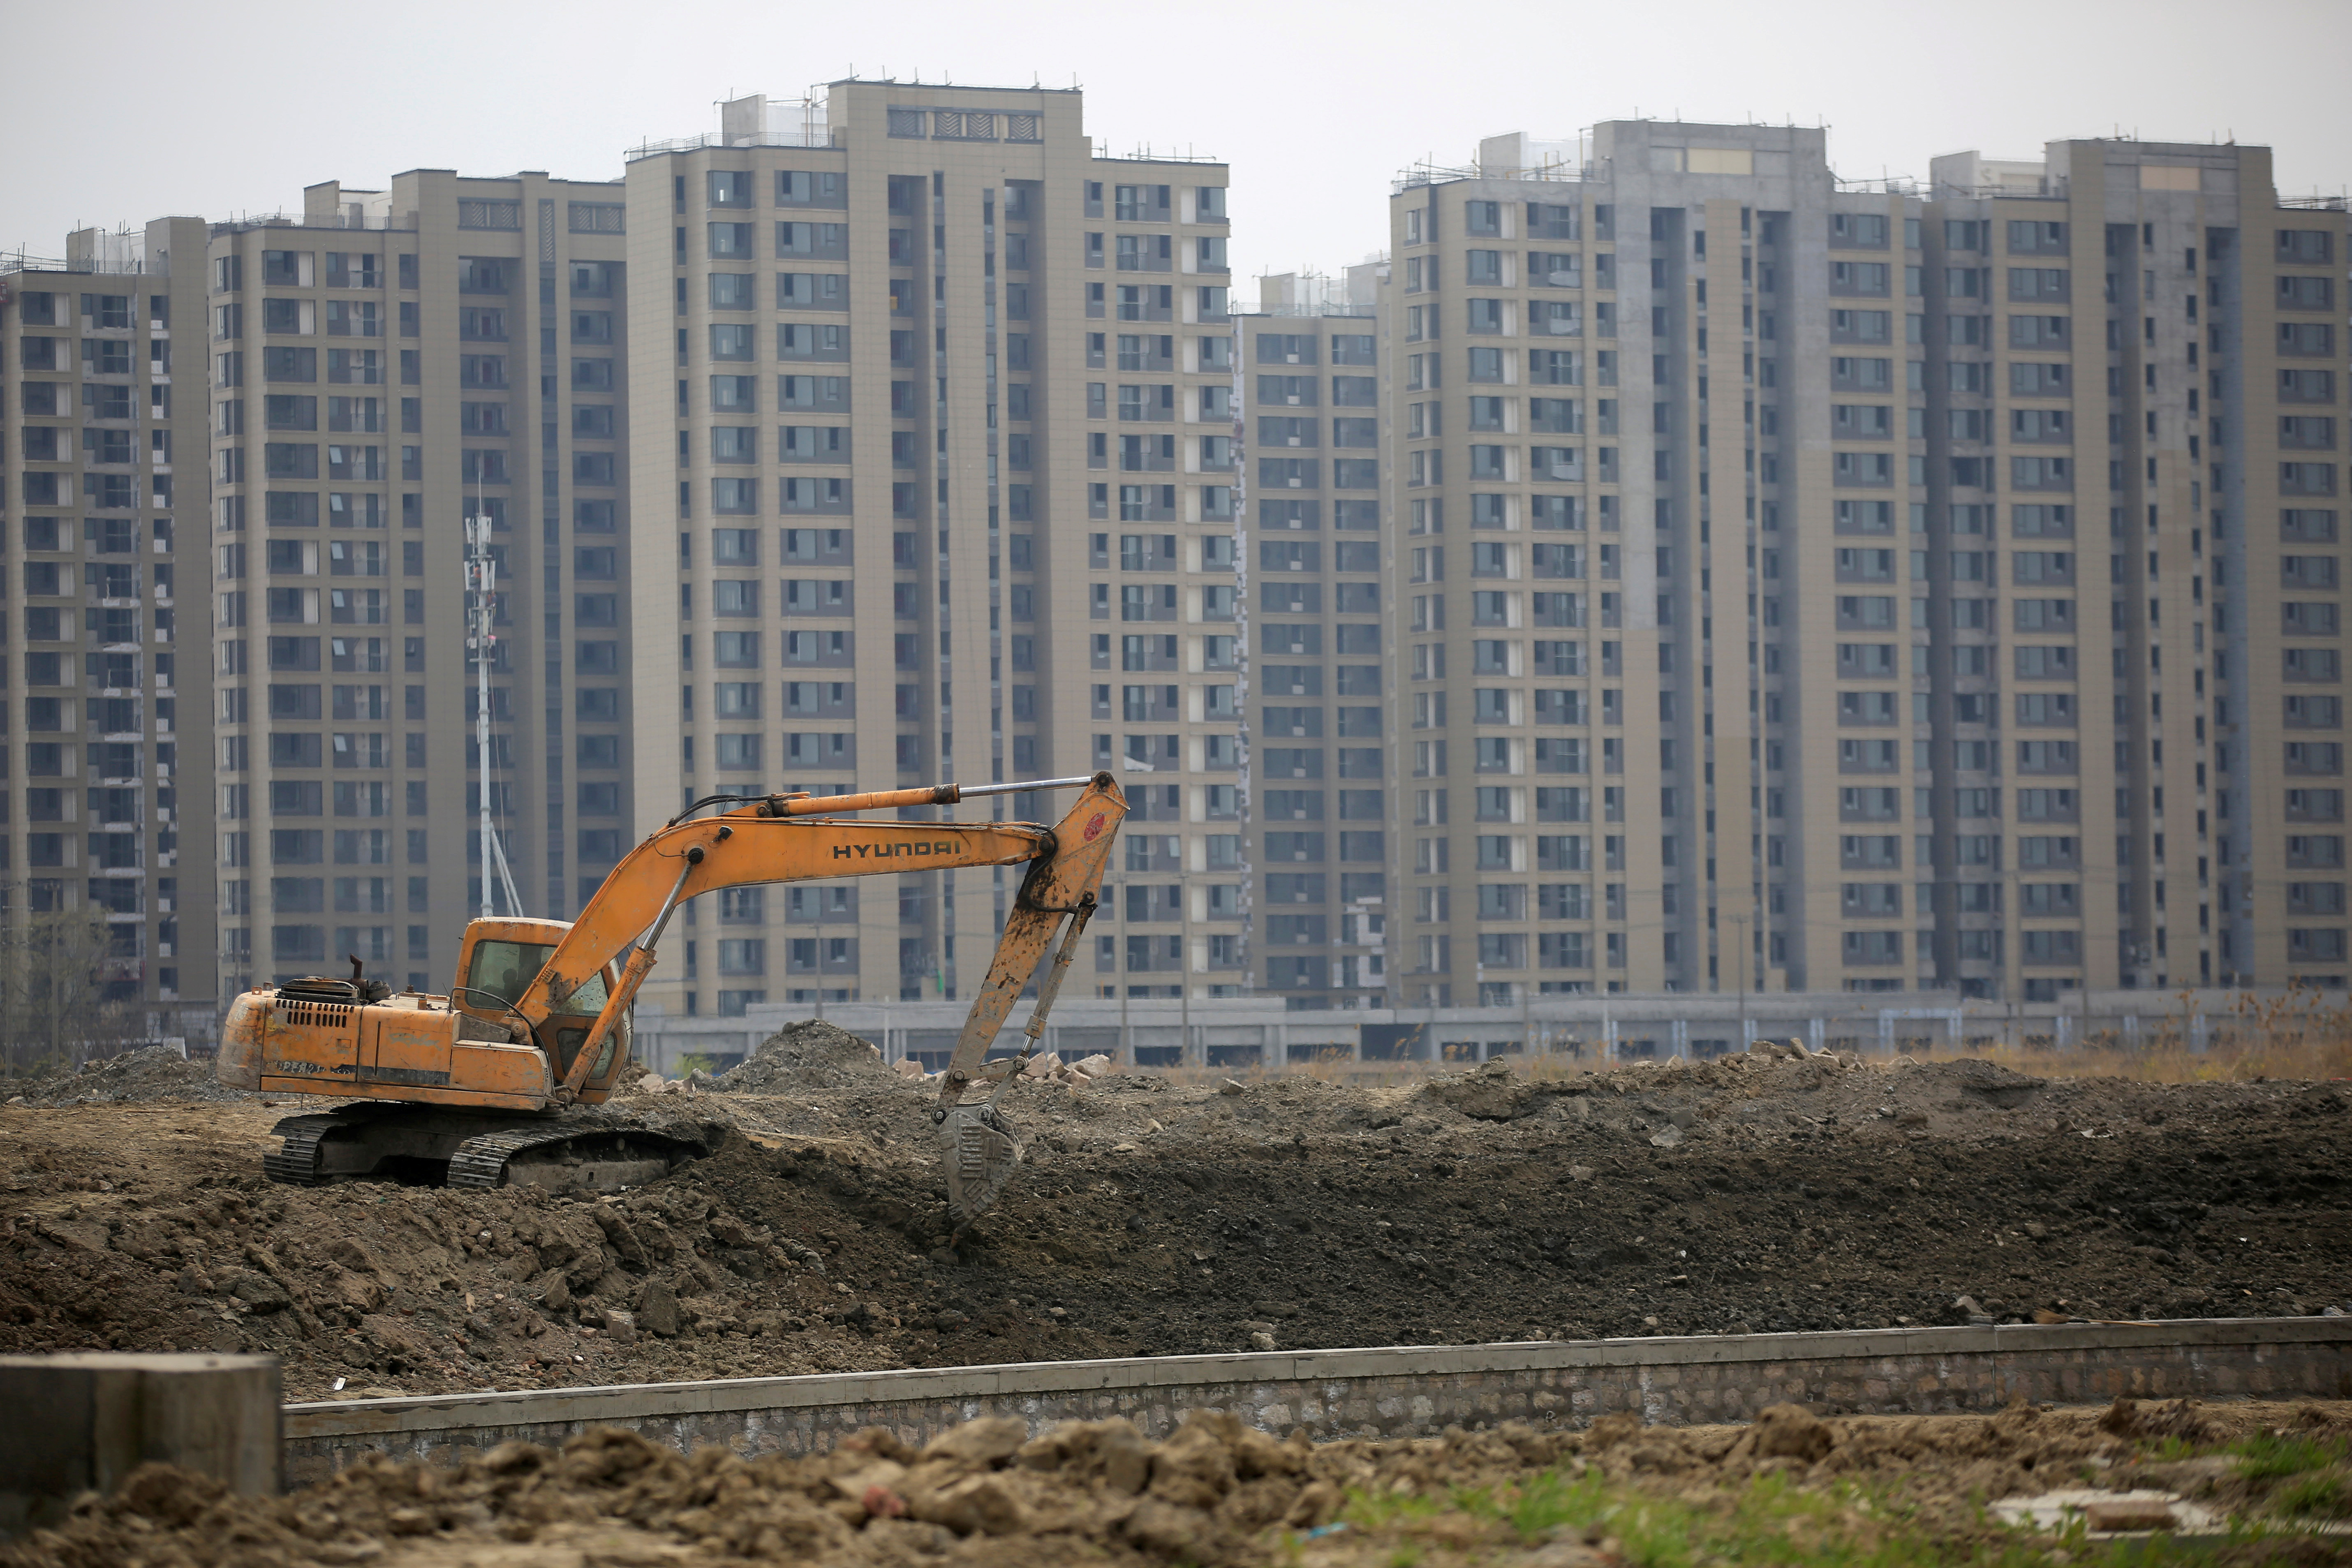 An excavator is seen at a construction site of new residential buildings in Shanghai, China, in this March 21, 2016 file photo. REUTERS/Aly Song/File Photo